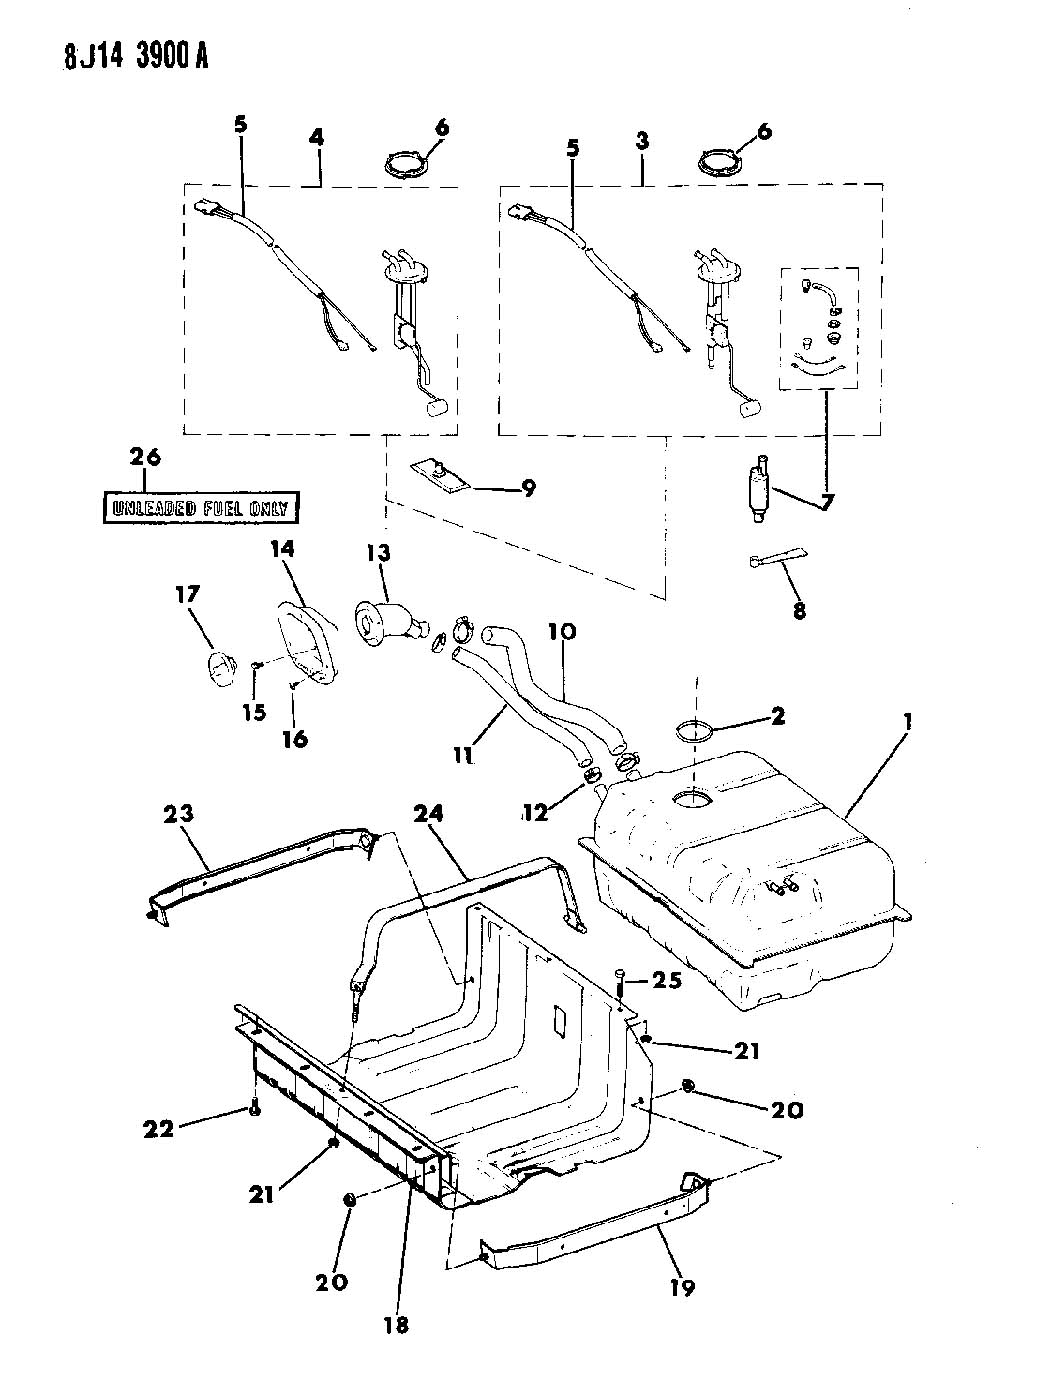 1995 Jeep Wrangler Soft Top Parts Diagram Wiring Diagrams 1983 Fiat 124 Electrical Schematic Yj Gas Tank